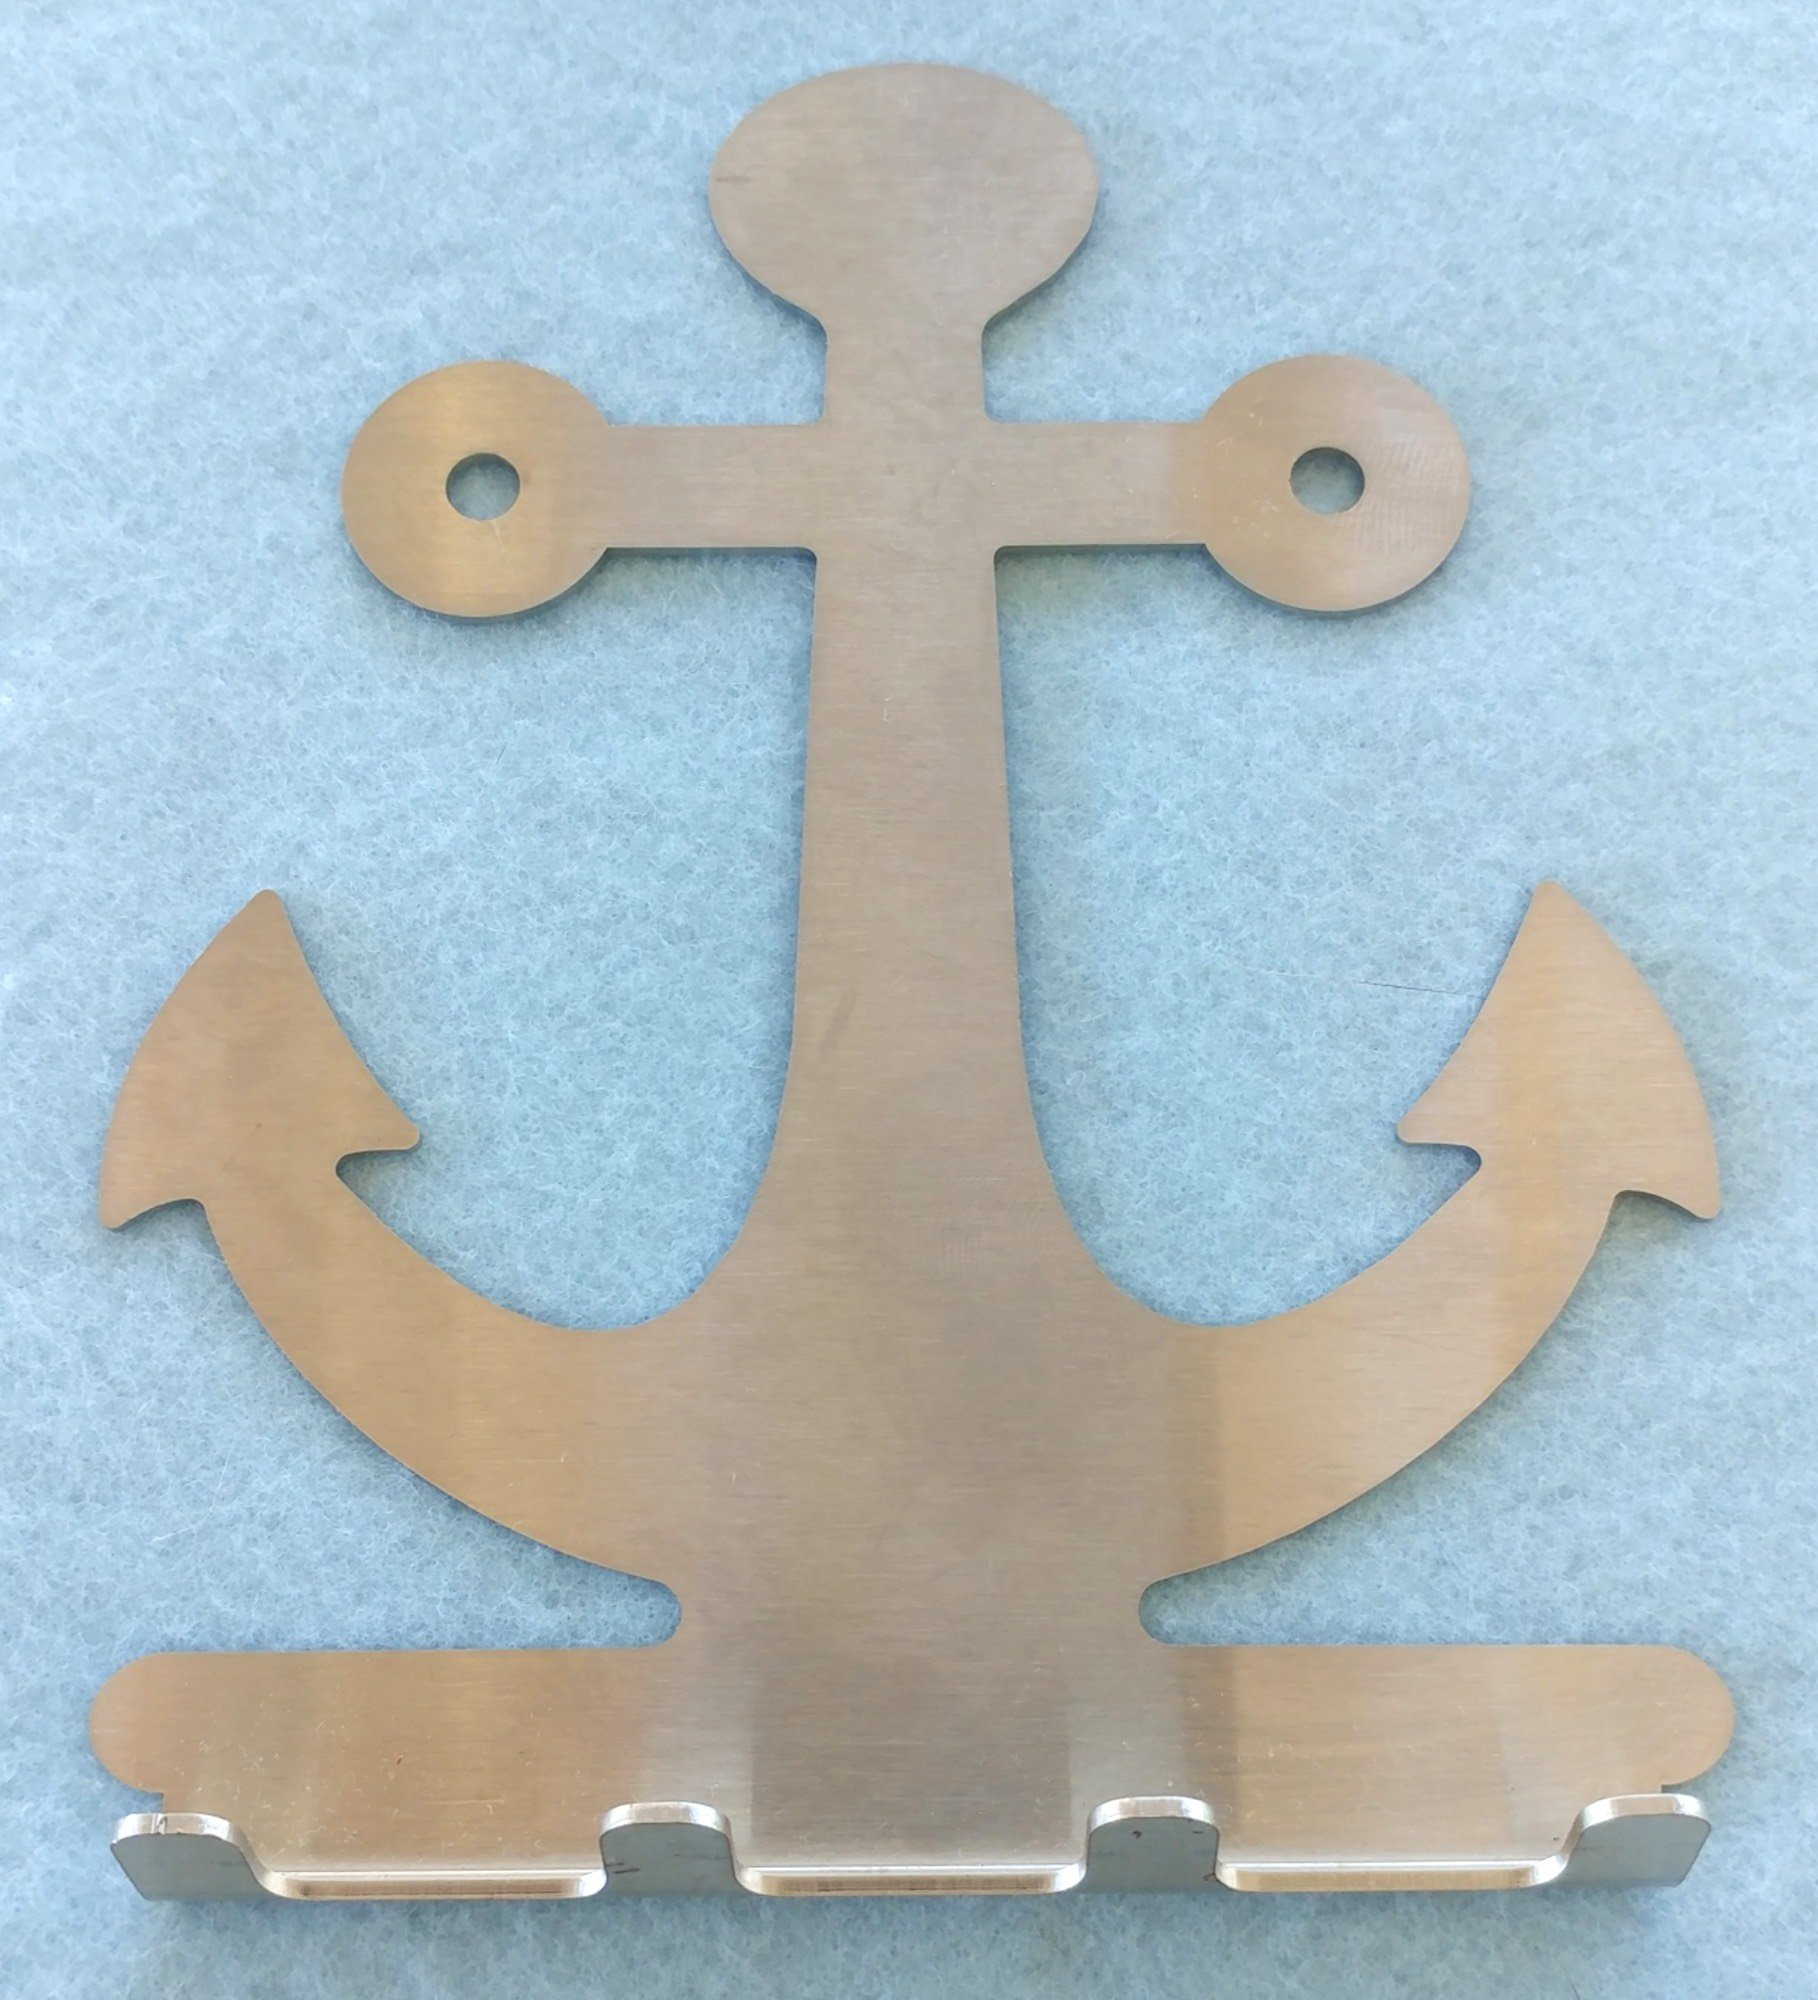 Unique Stainless Steel Key Rack holds spare keys, fobs, remotes: Anchor Design